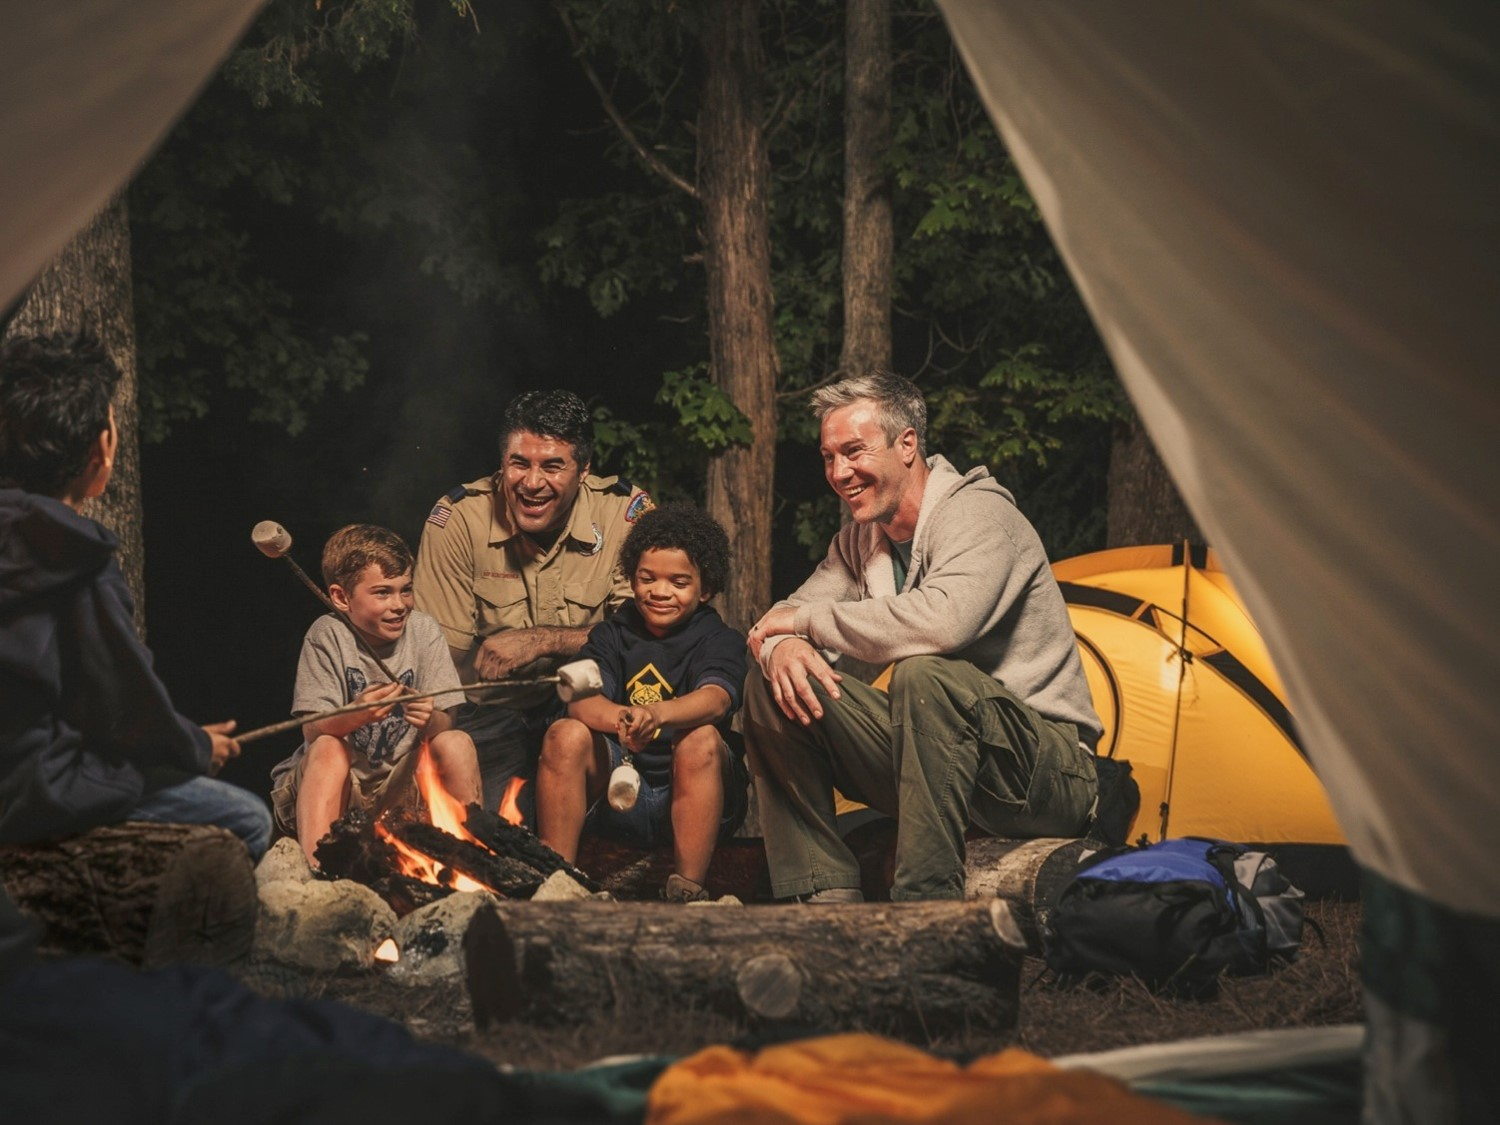 cub scout camping - Cub Scout Camping PNG